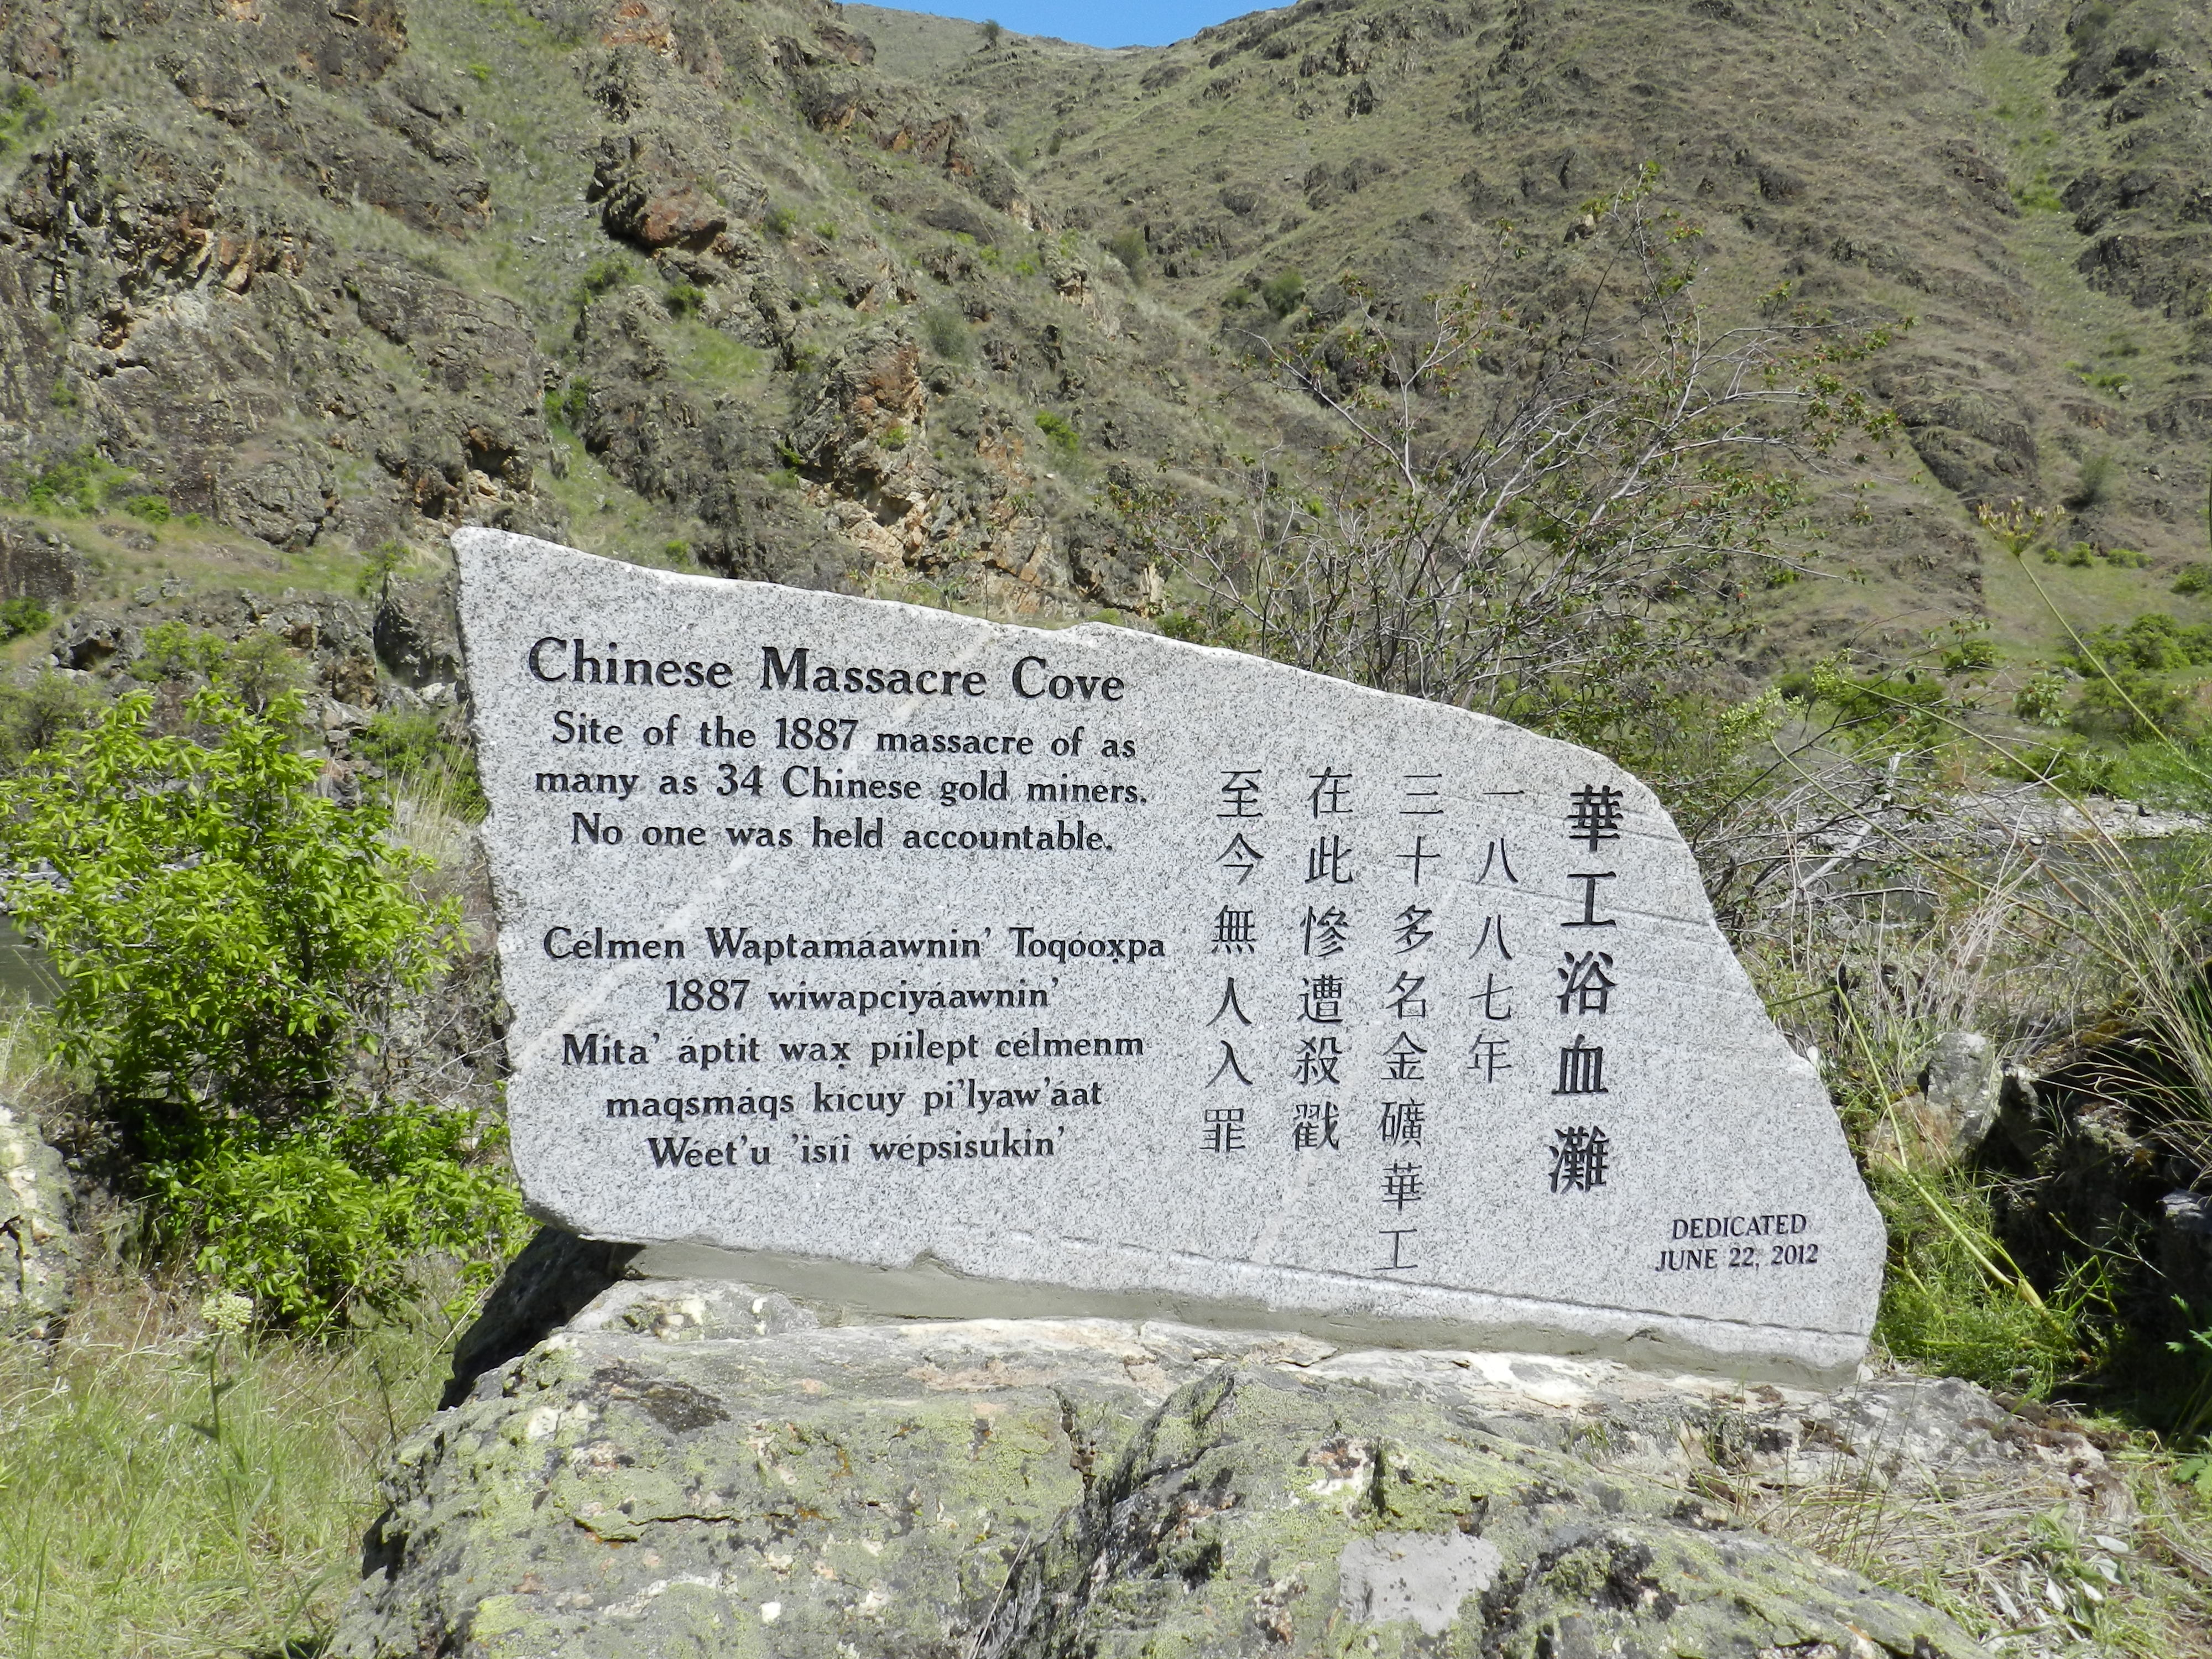 Massacre in Hells Canyon to be marked in stone at Chinese Remembering 2012